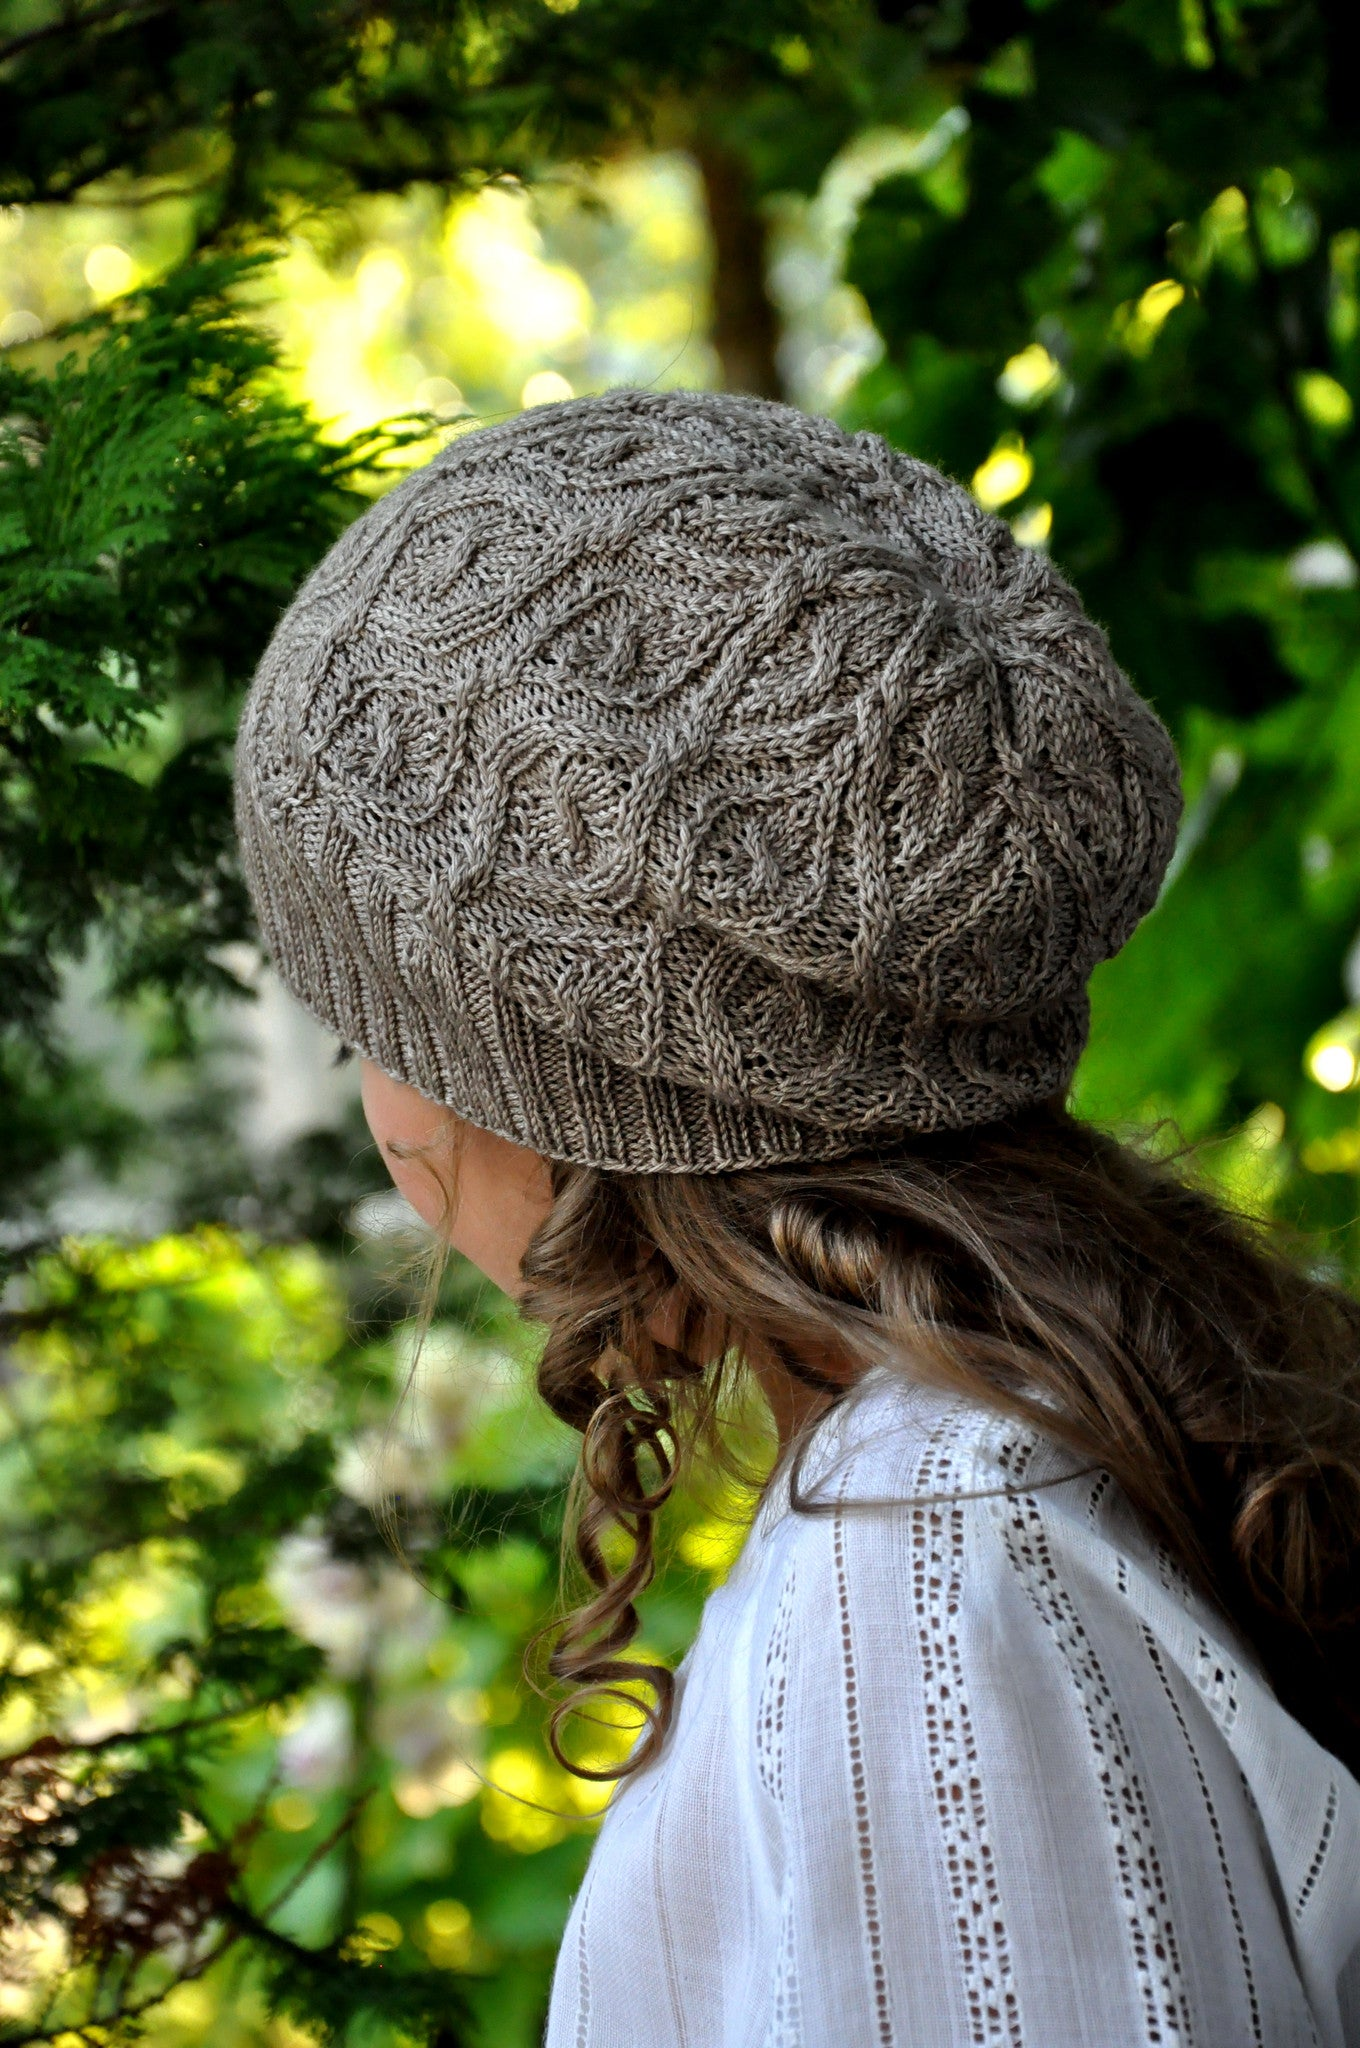 Fanciful Flower Hat Kit  |  Pattern + Yarn